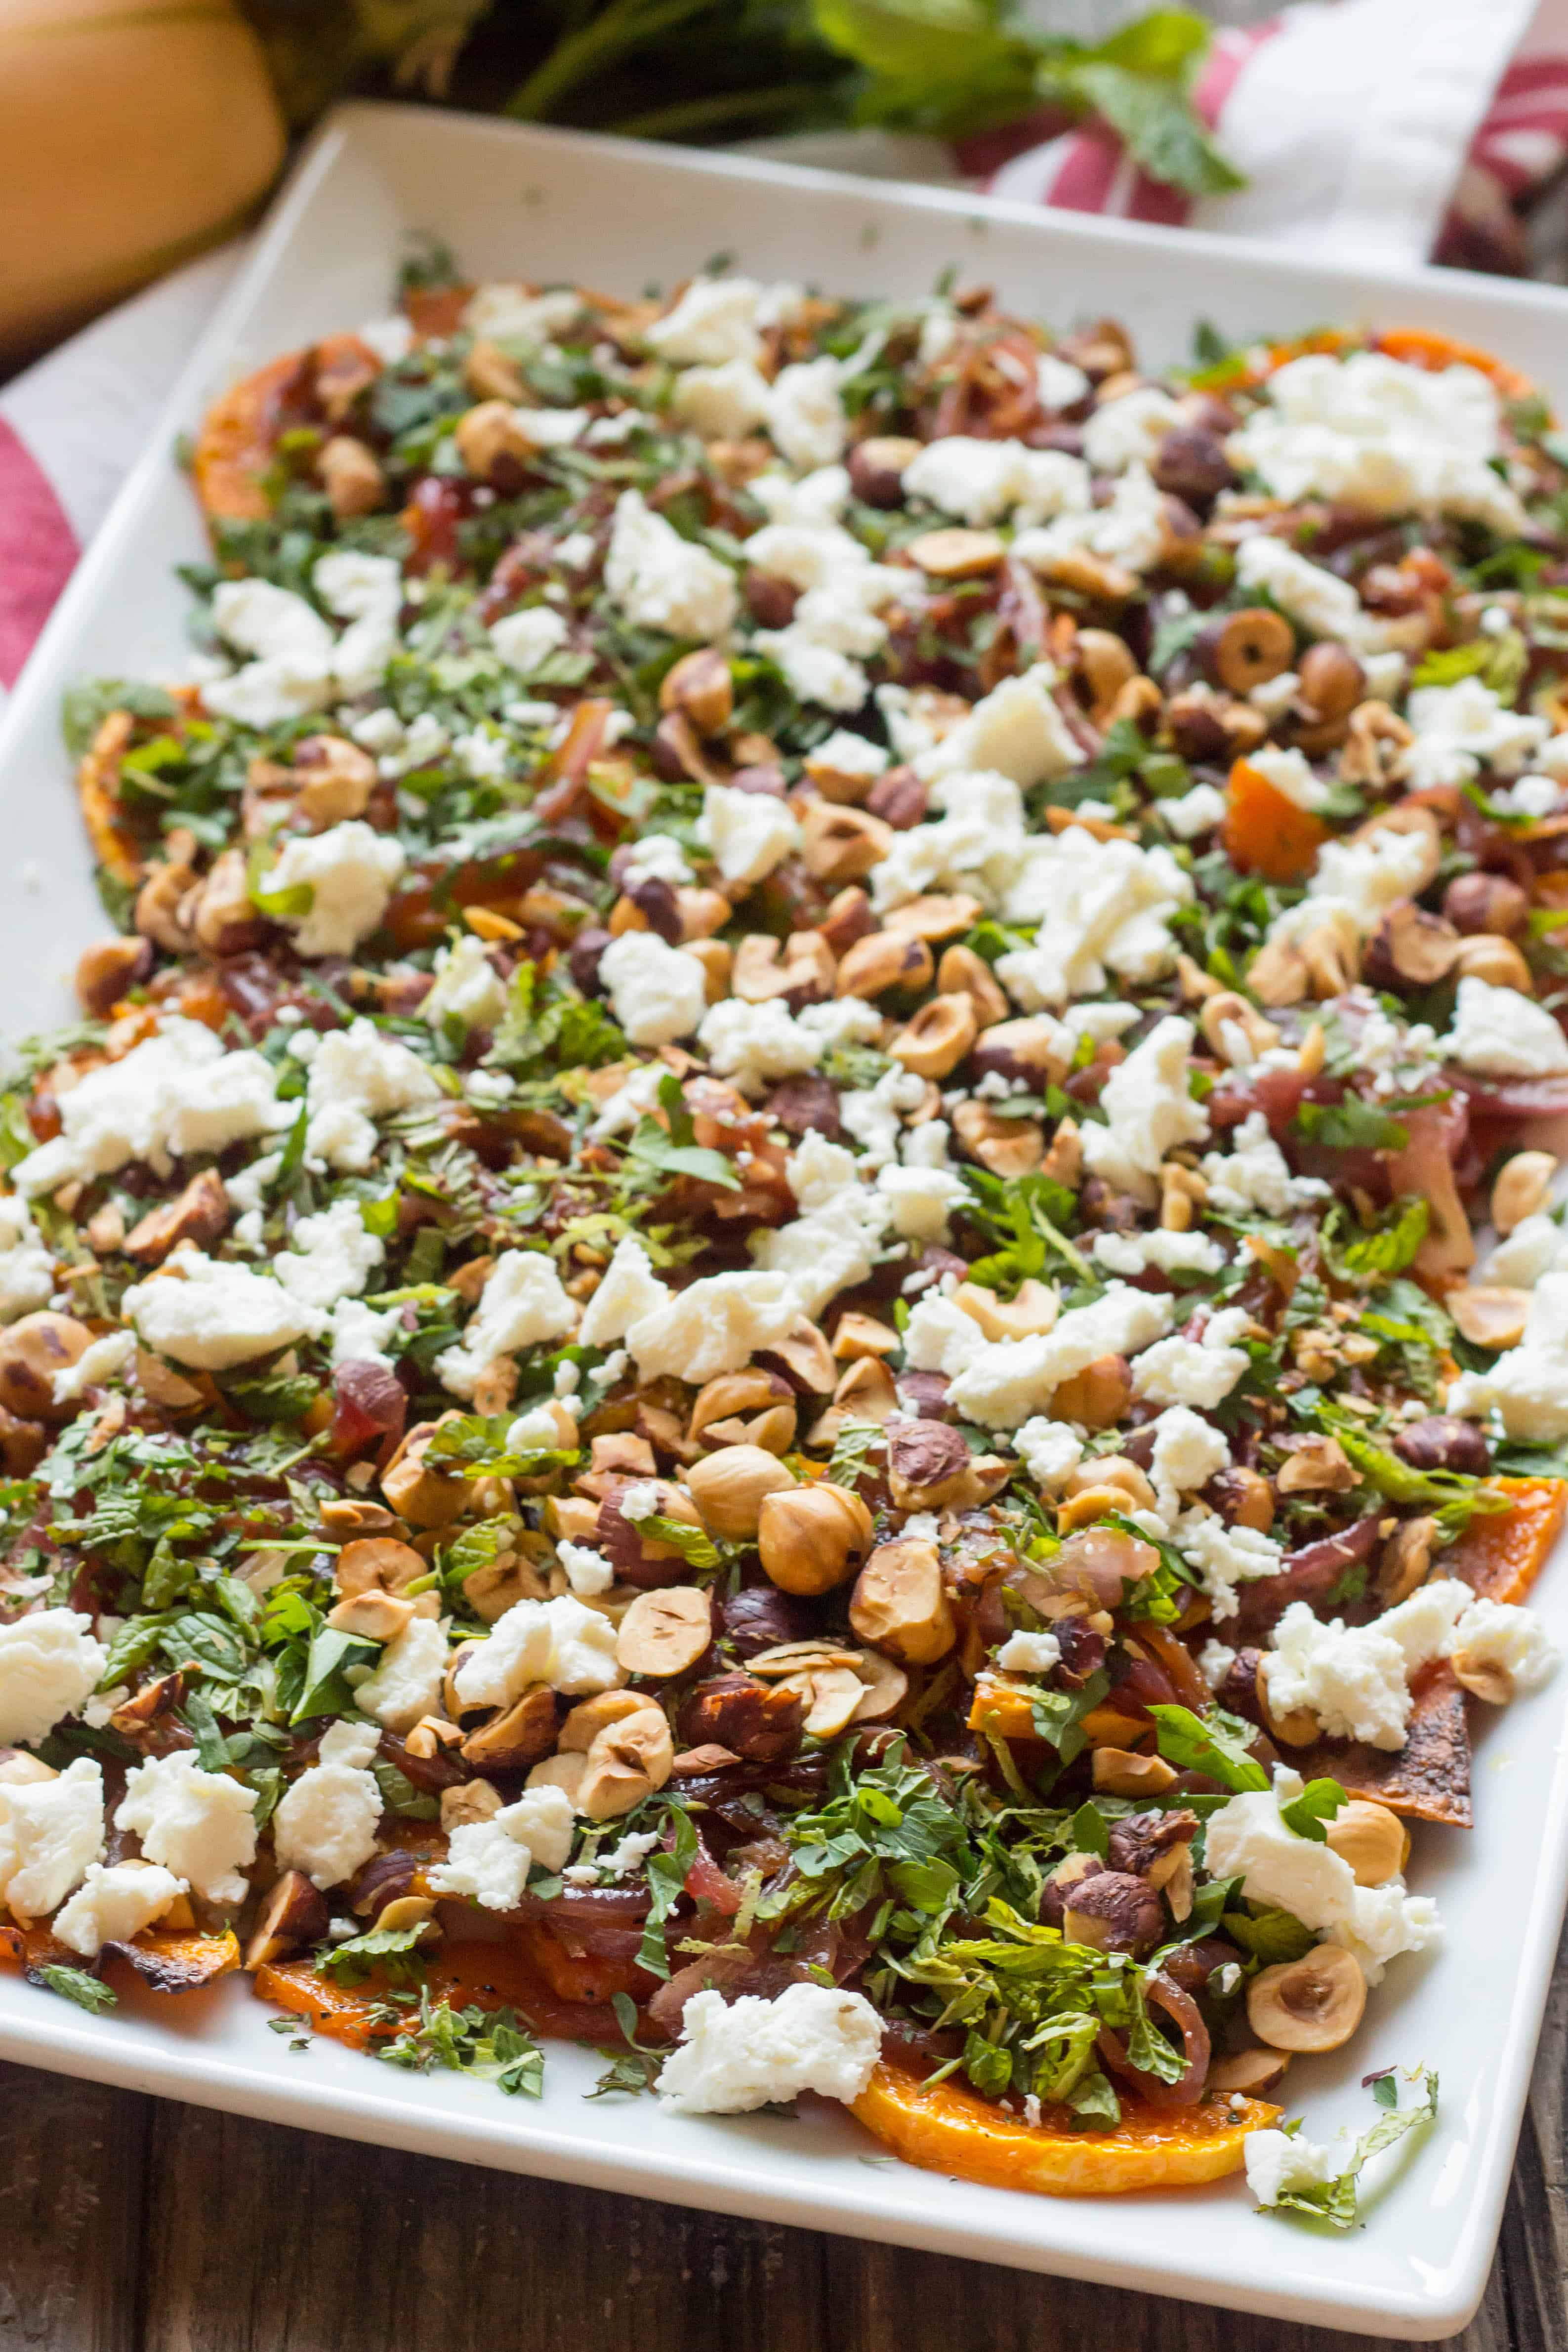 Roasted Butternut Squash with Goat Cheese, Hazelnuts + Lime. An awesome vegetarian main or unique Thanksgiving side! | ColeyCooks.com